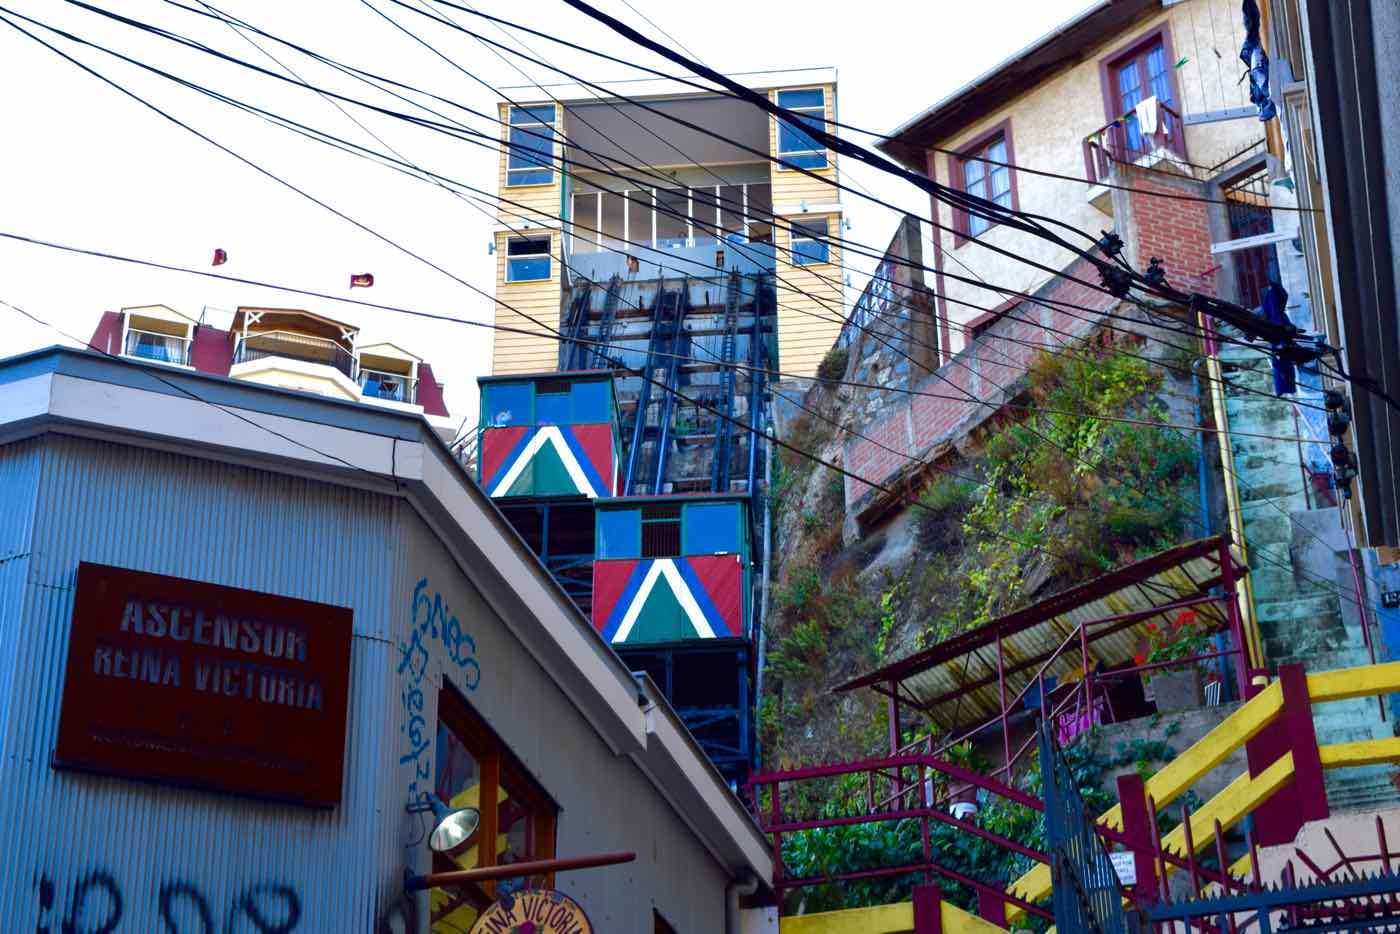 Colourful Funicular in Valparaiso